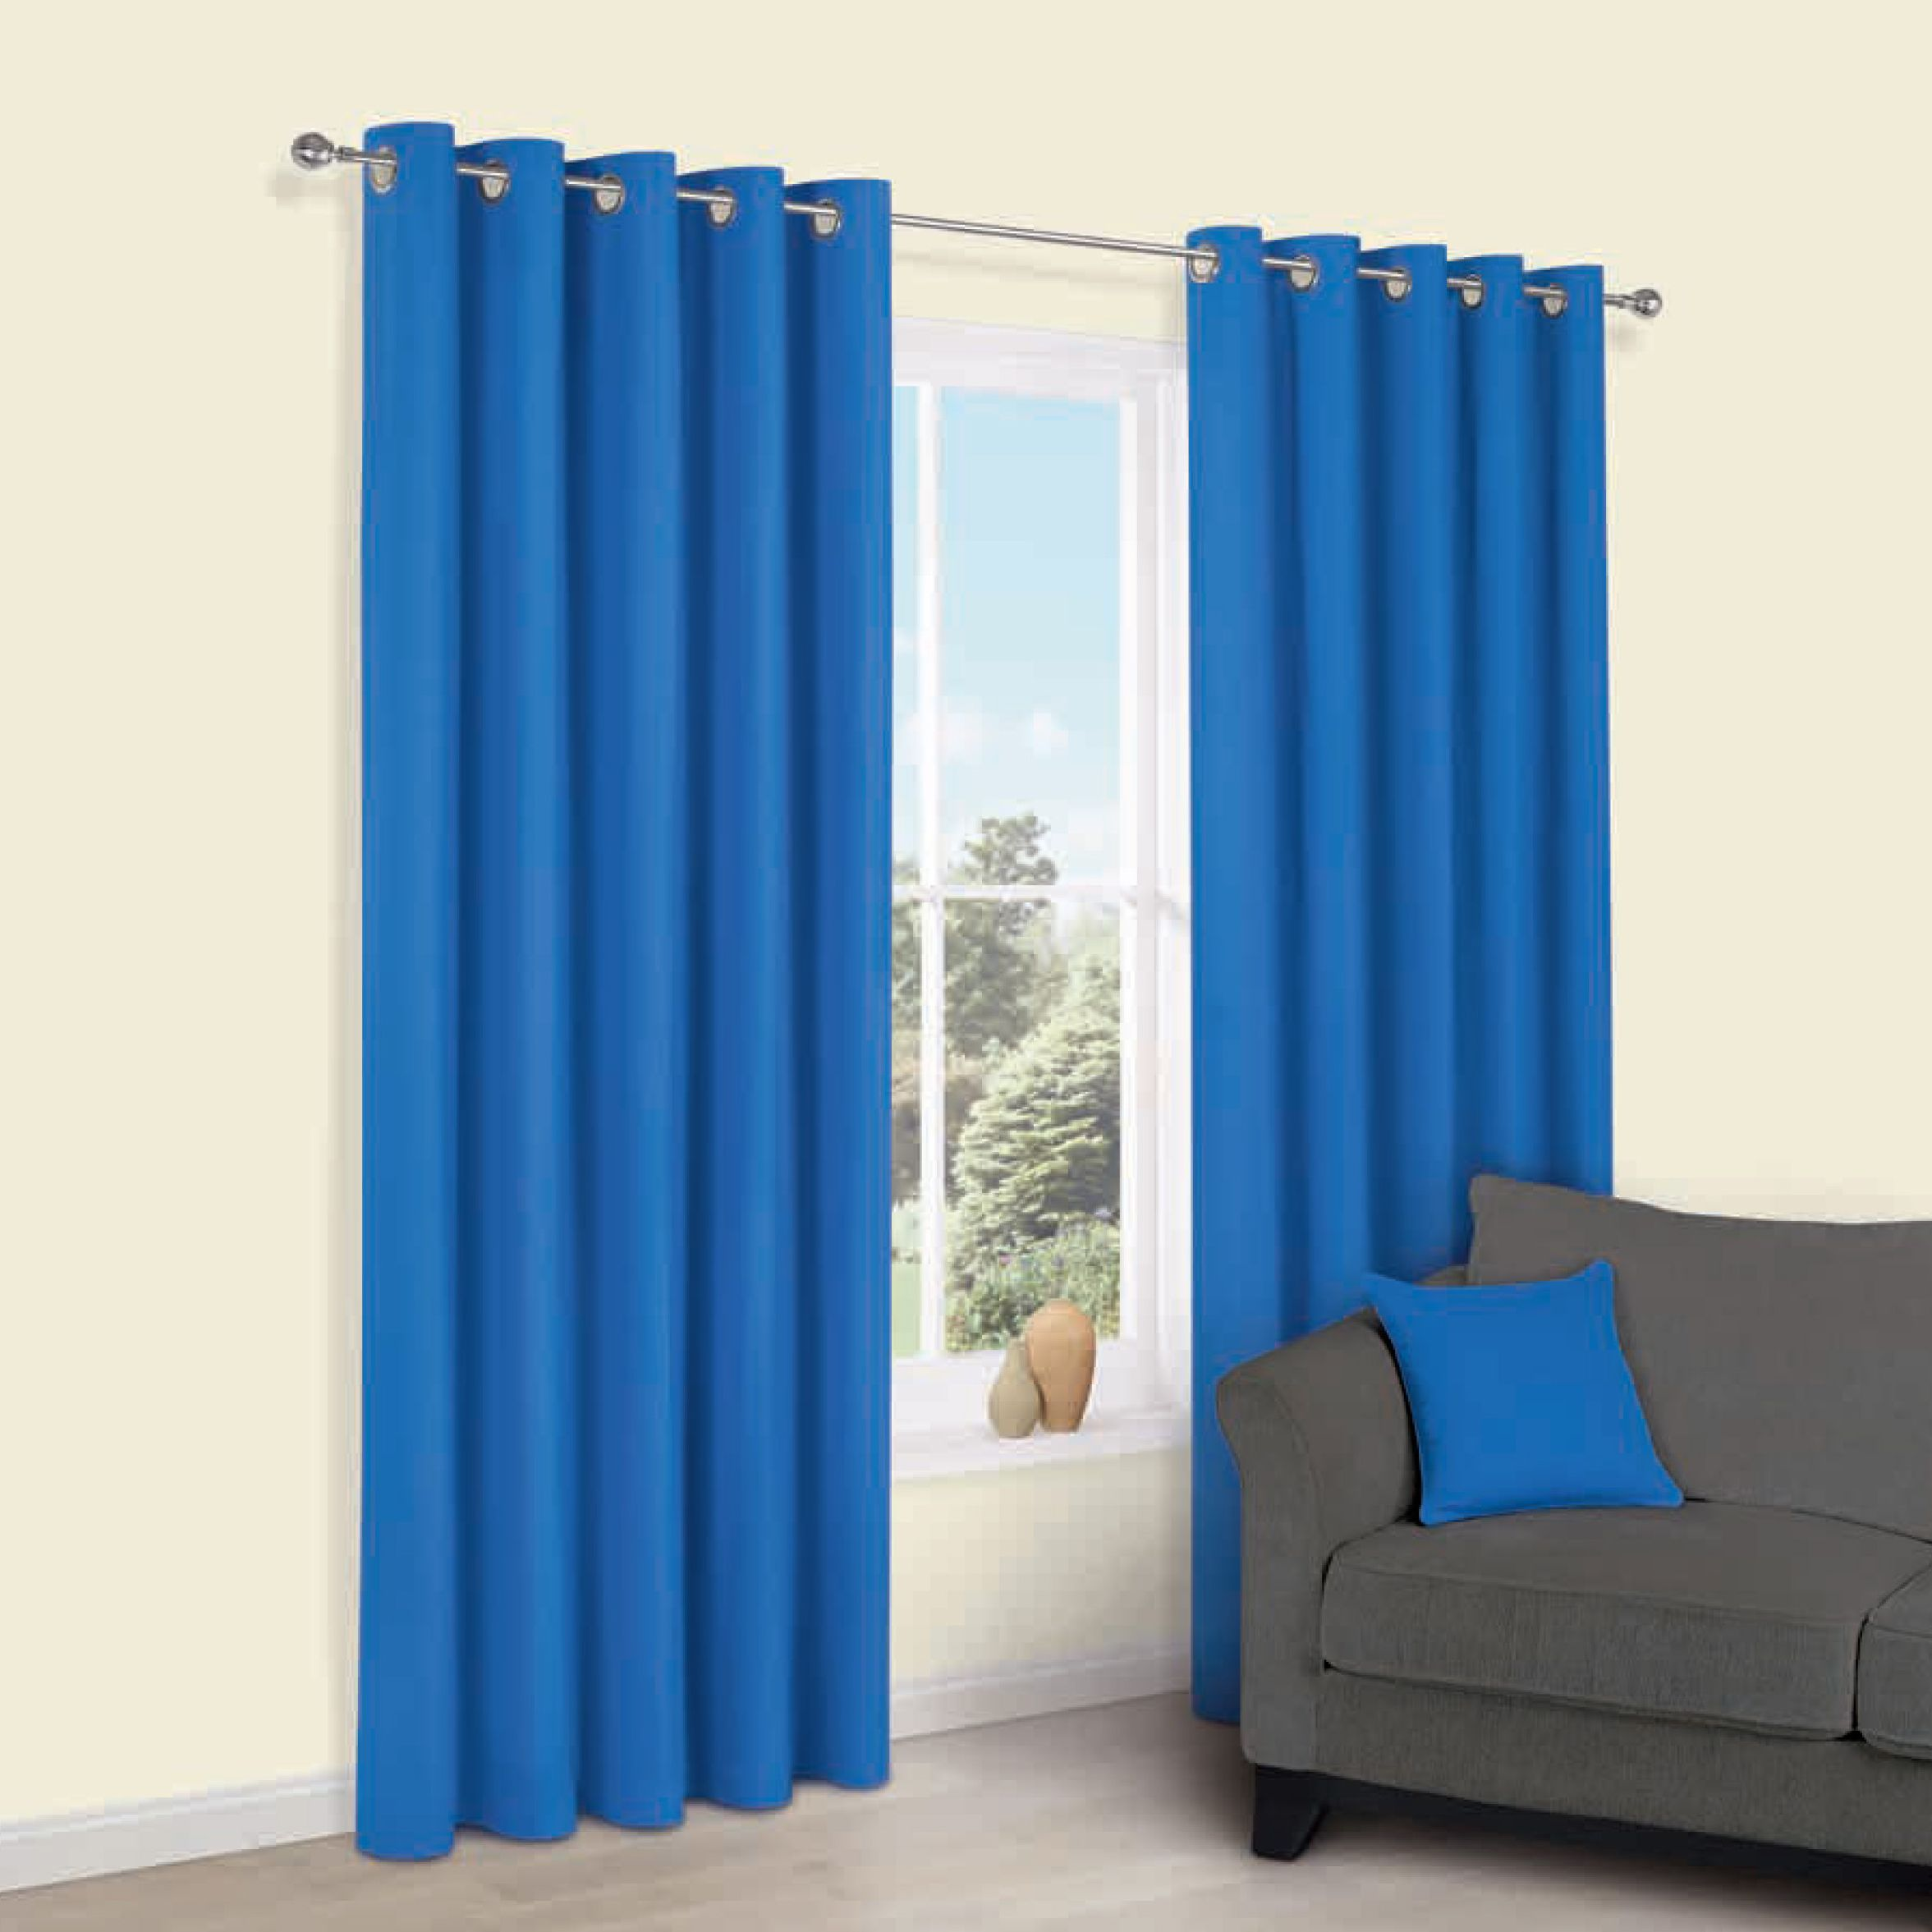 Zen Blue Plain Eyelet Curtains (w)117cm (l)137cm